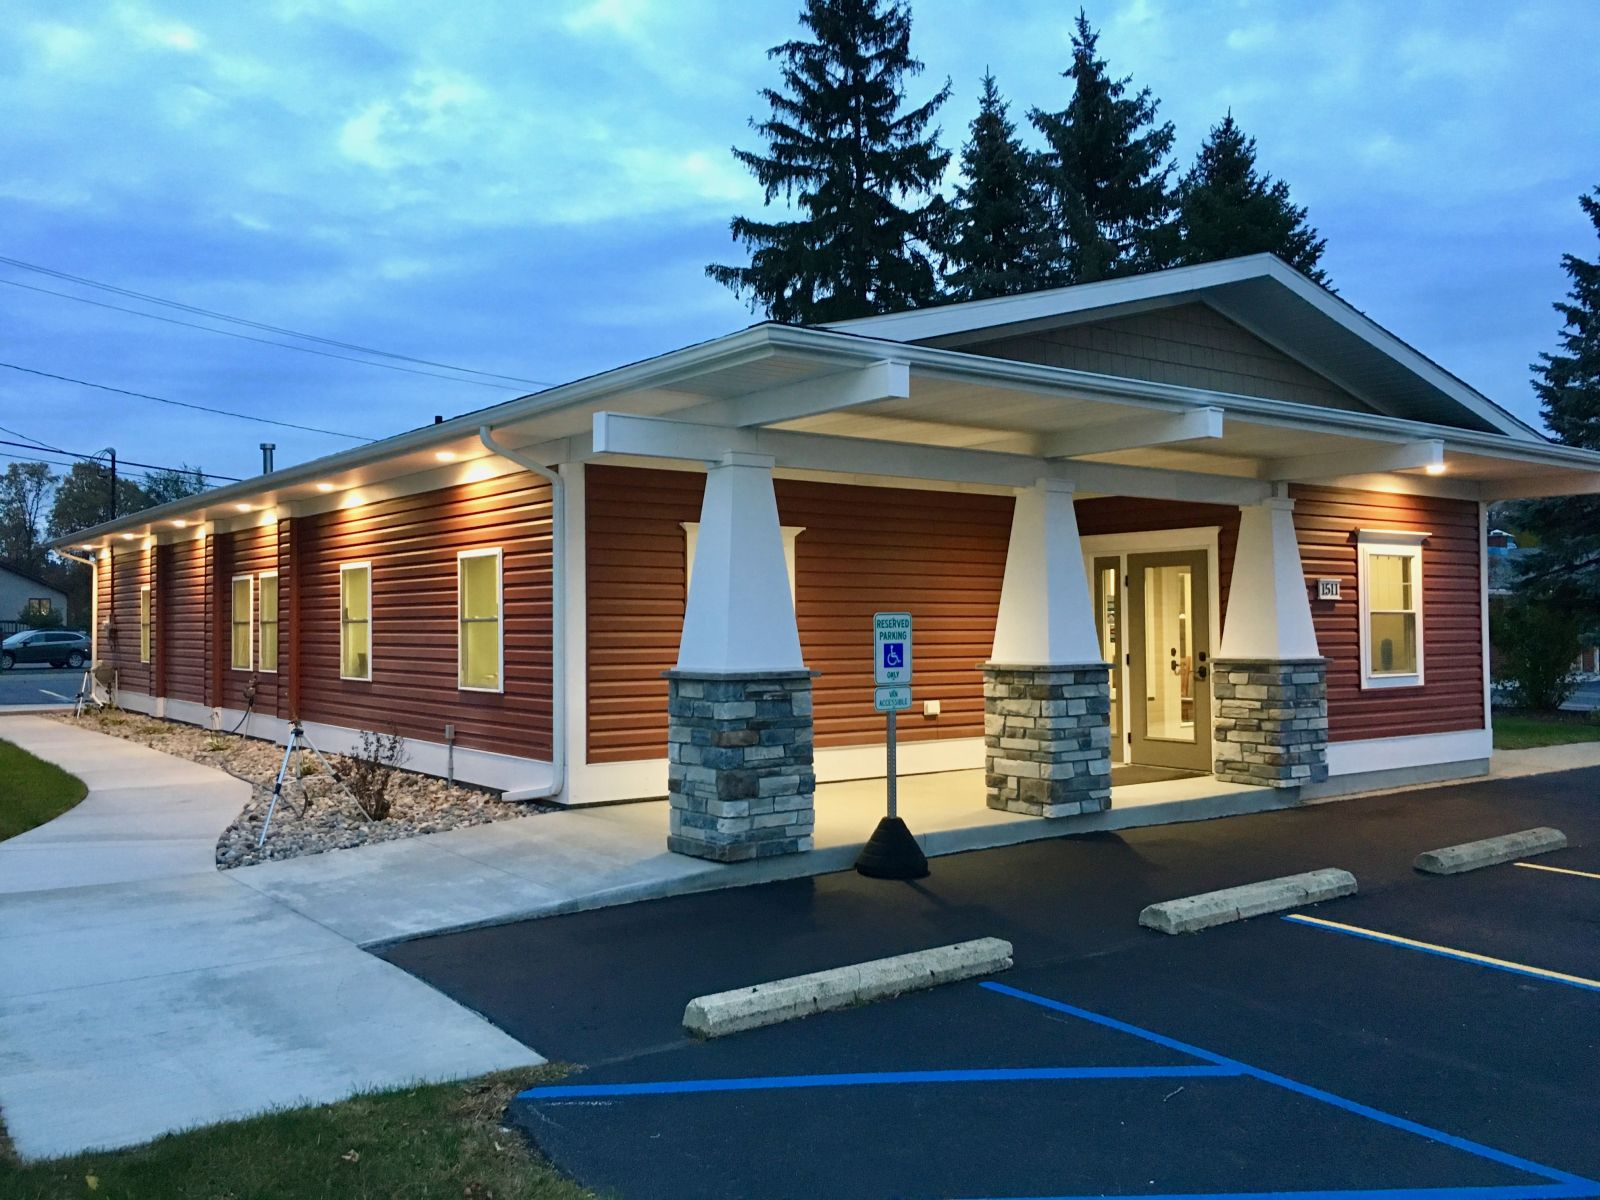 Eaton Rapids Cosmetic Family Dentist - Eaton Rapids Dental Office